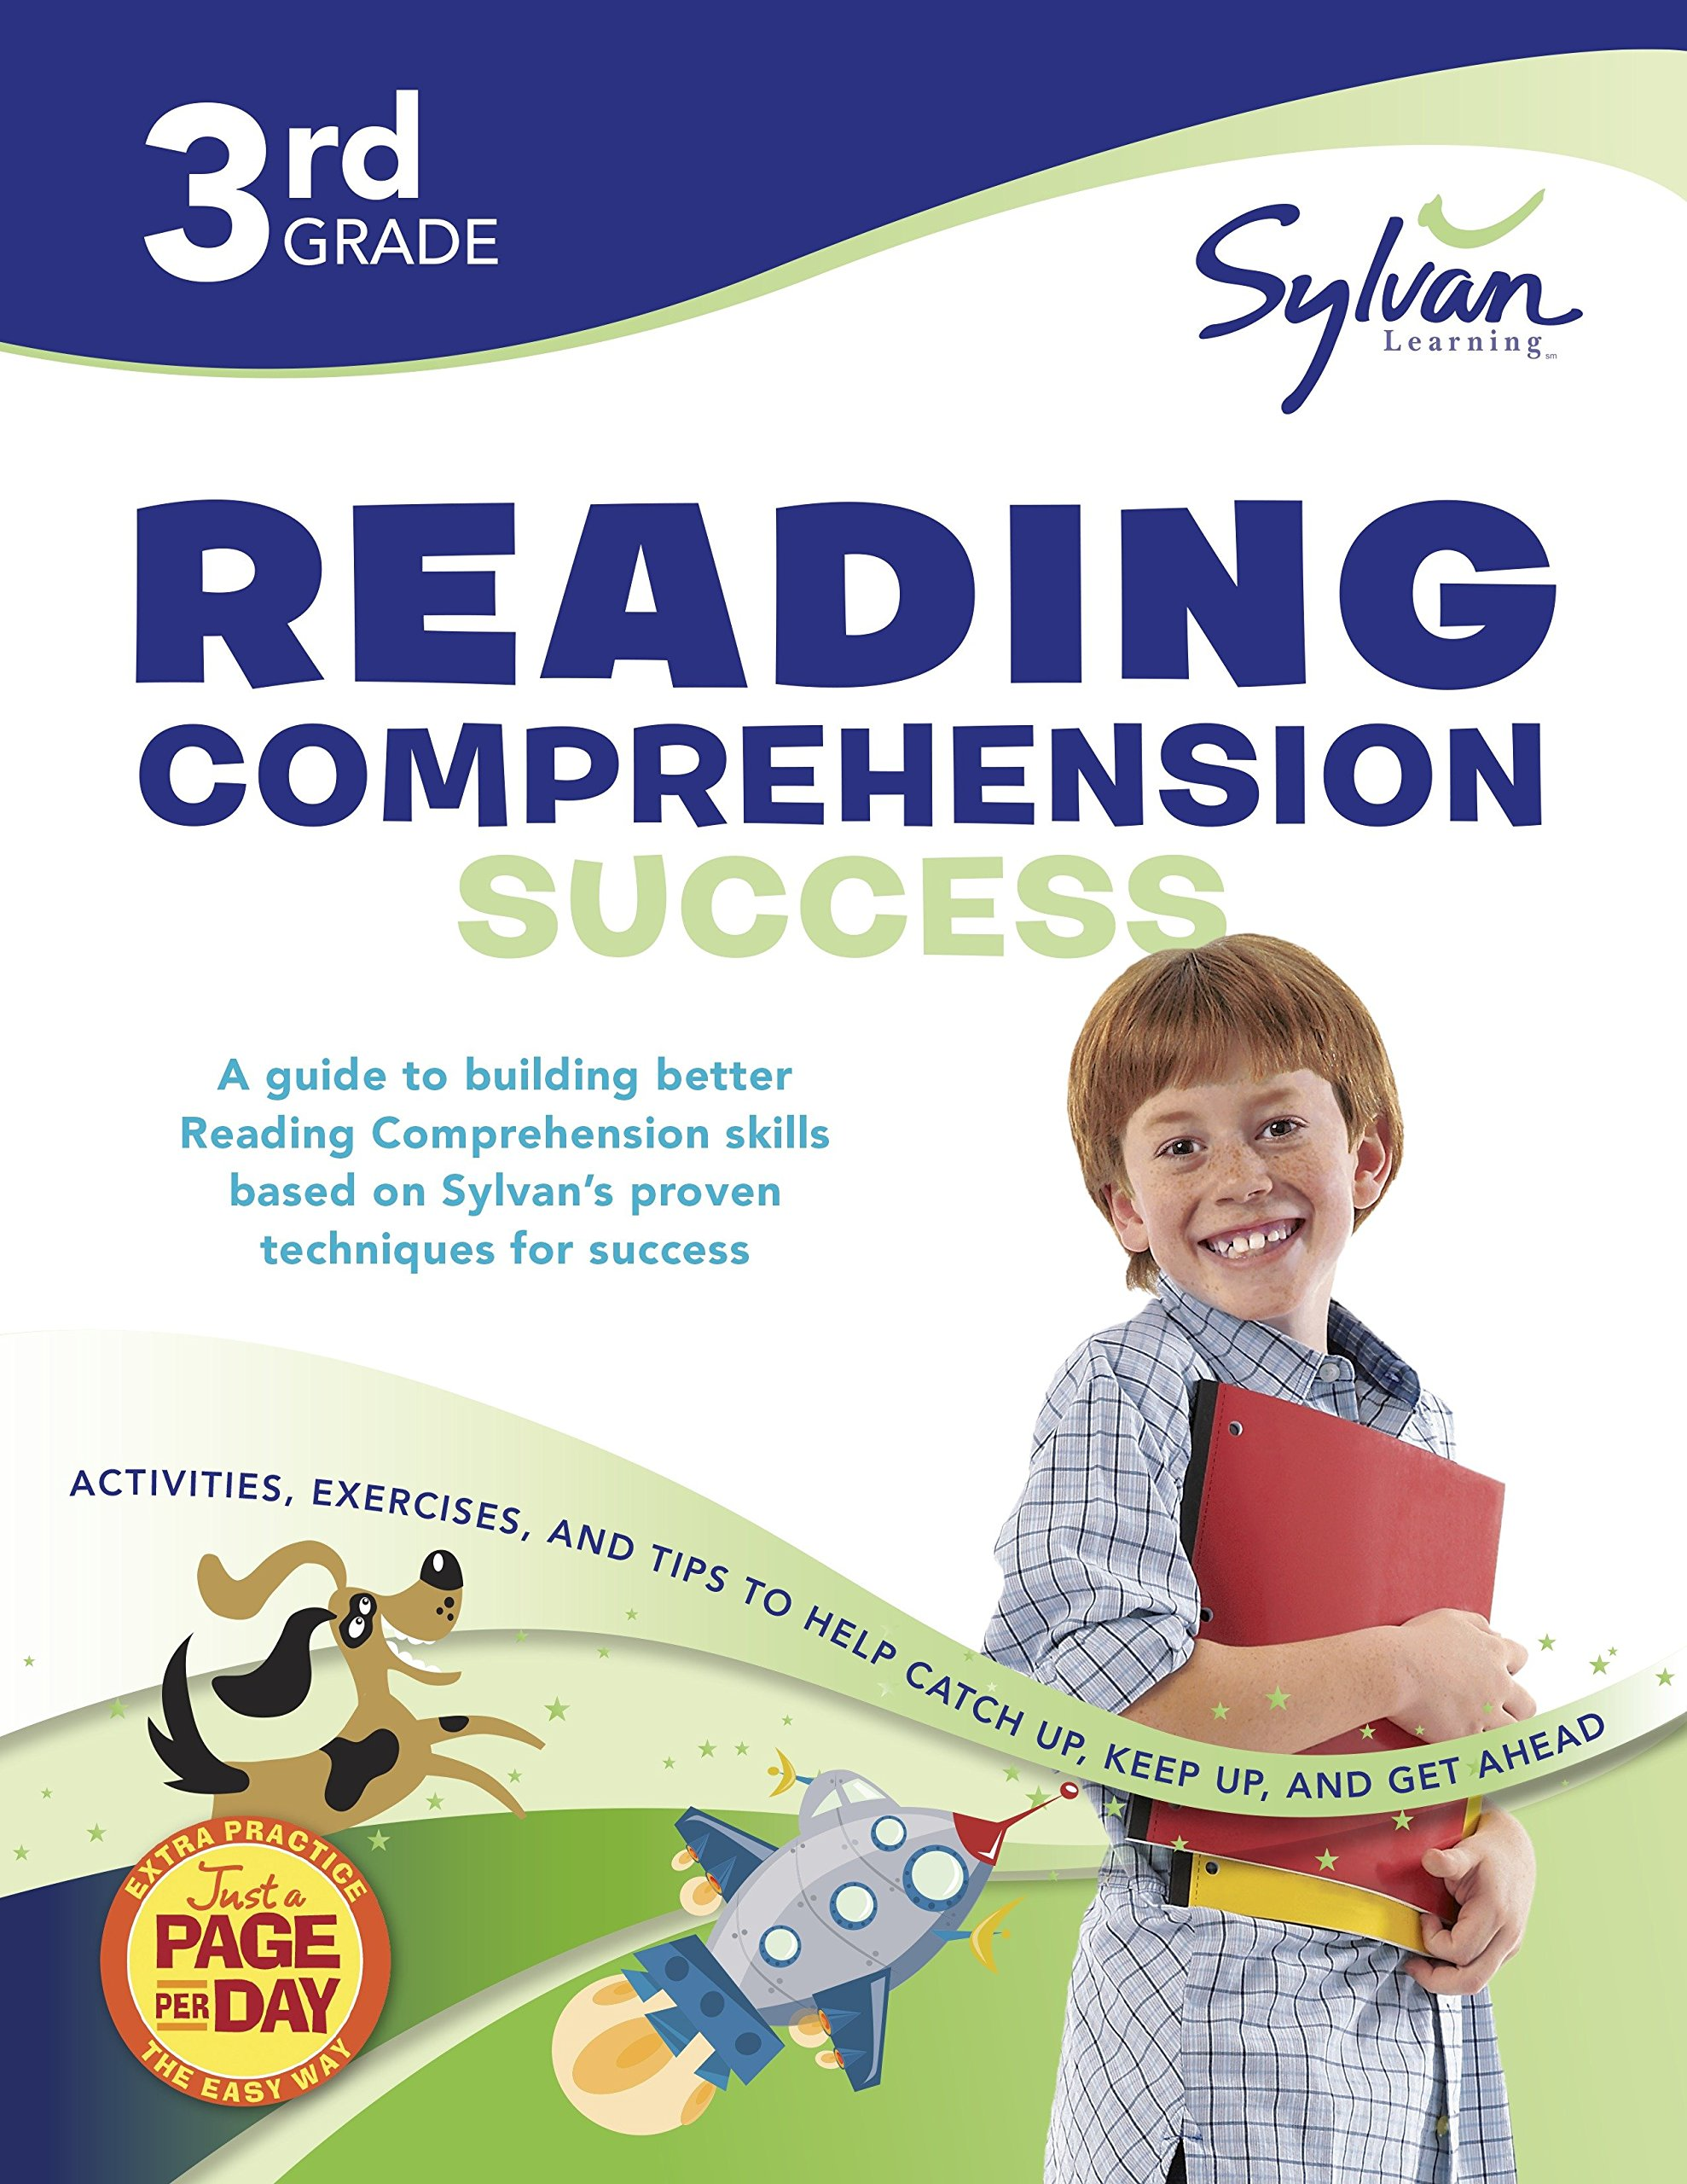 3rd Grade Reading Comprehension Success: Activities, Exercises, and Tips to Help Catch Up, Keep Up, and Get Ahead (Sylvan Language Arts Workbooks) by Sylvan Learning Publishing